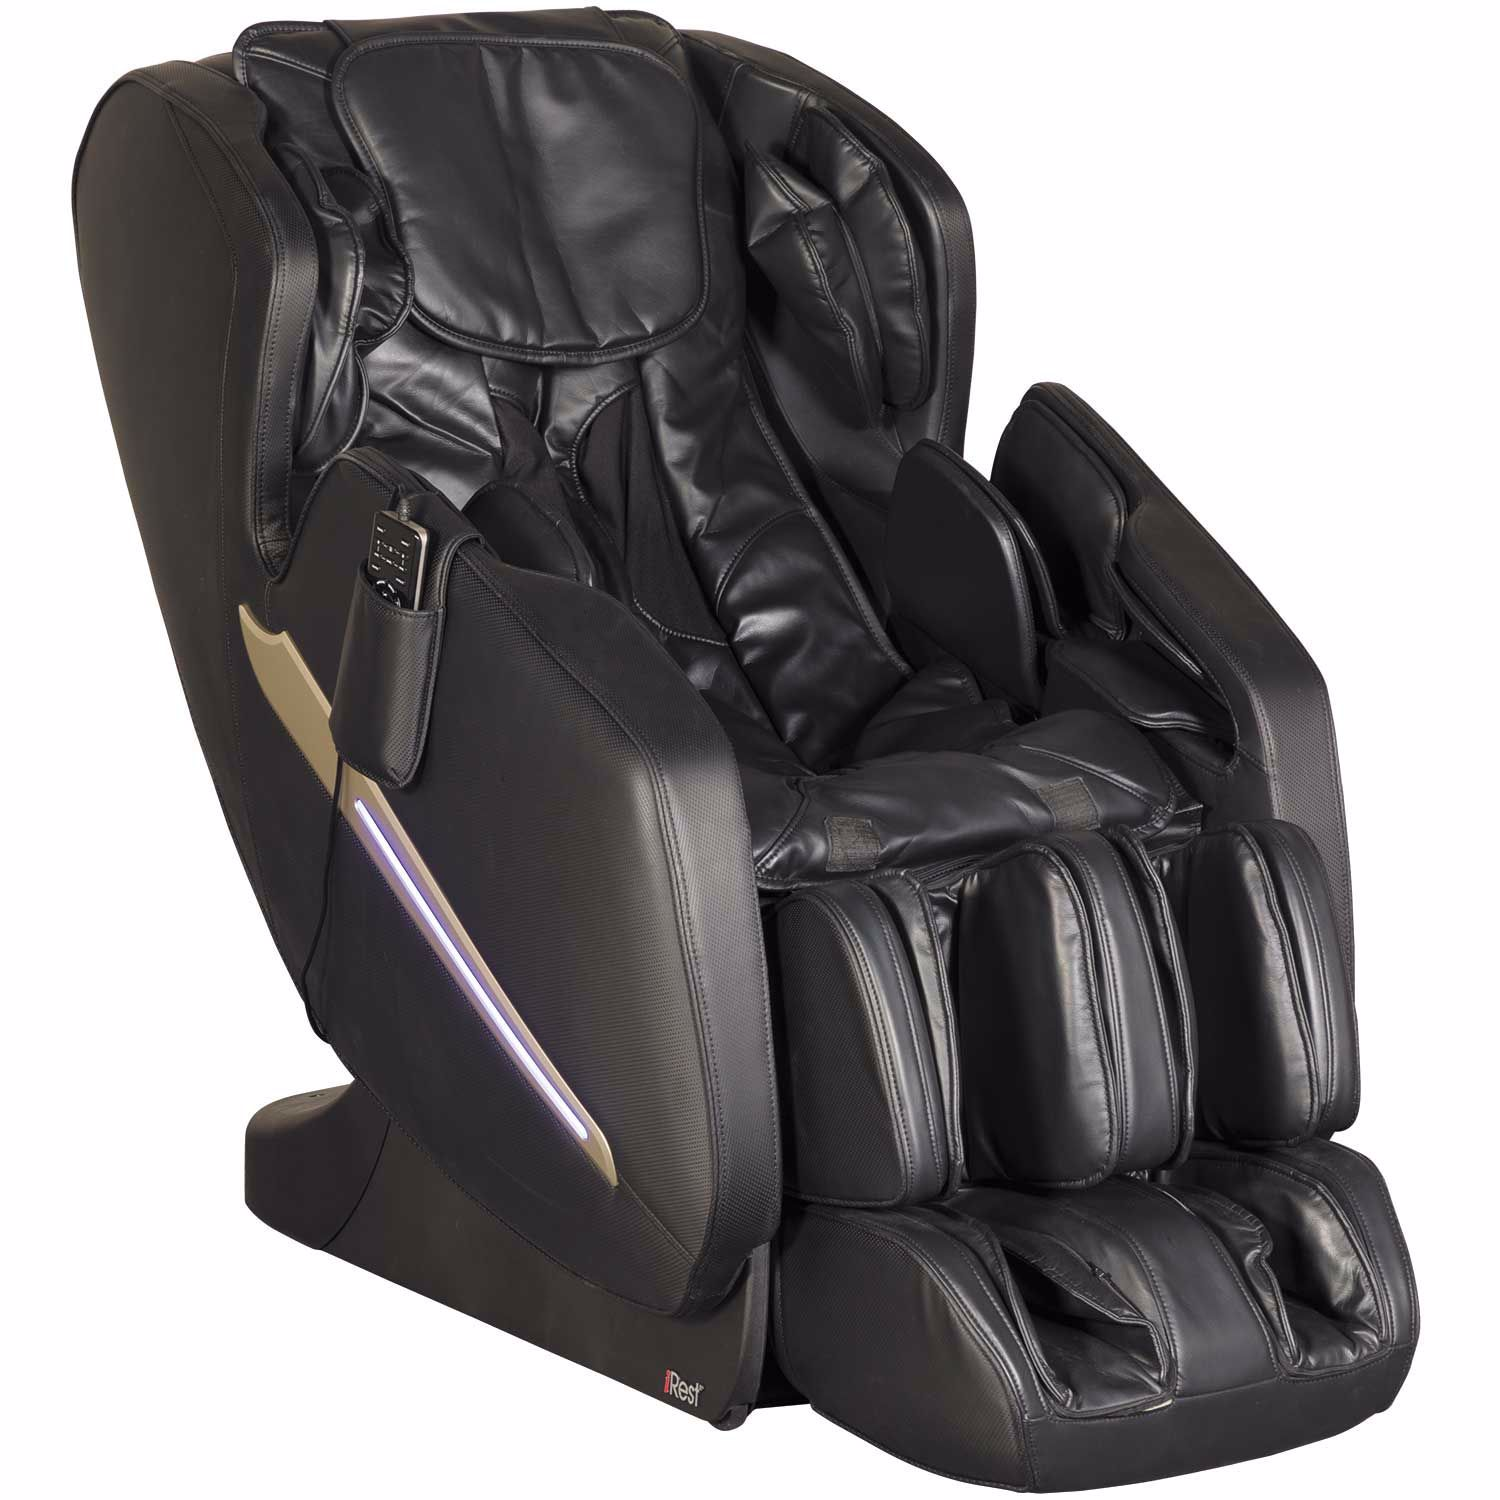 Awesome Black Heat And Massage Chair Machost Co Dining Chair Design Ideas Machostcouk